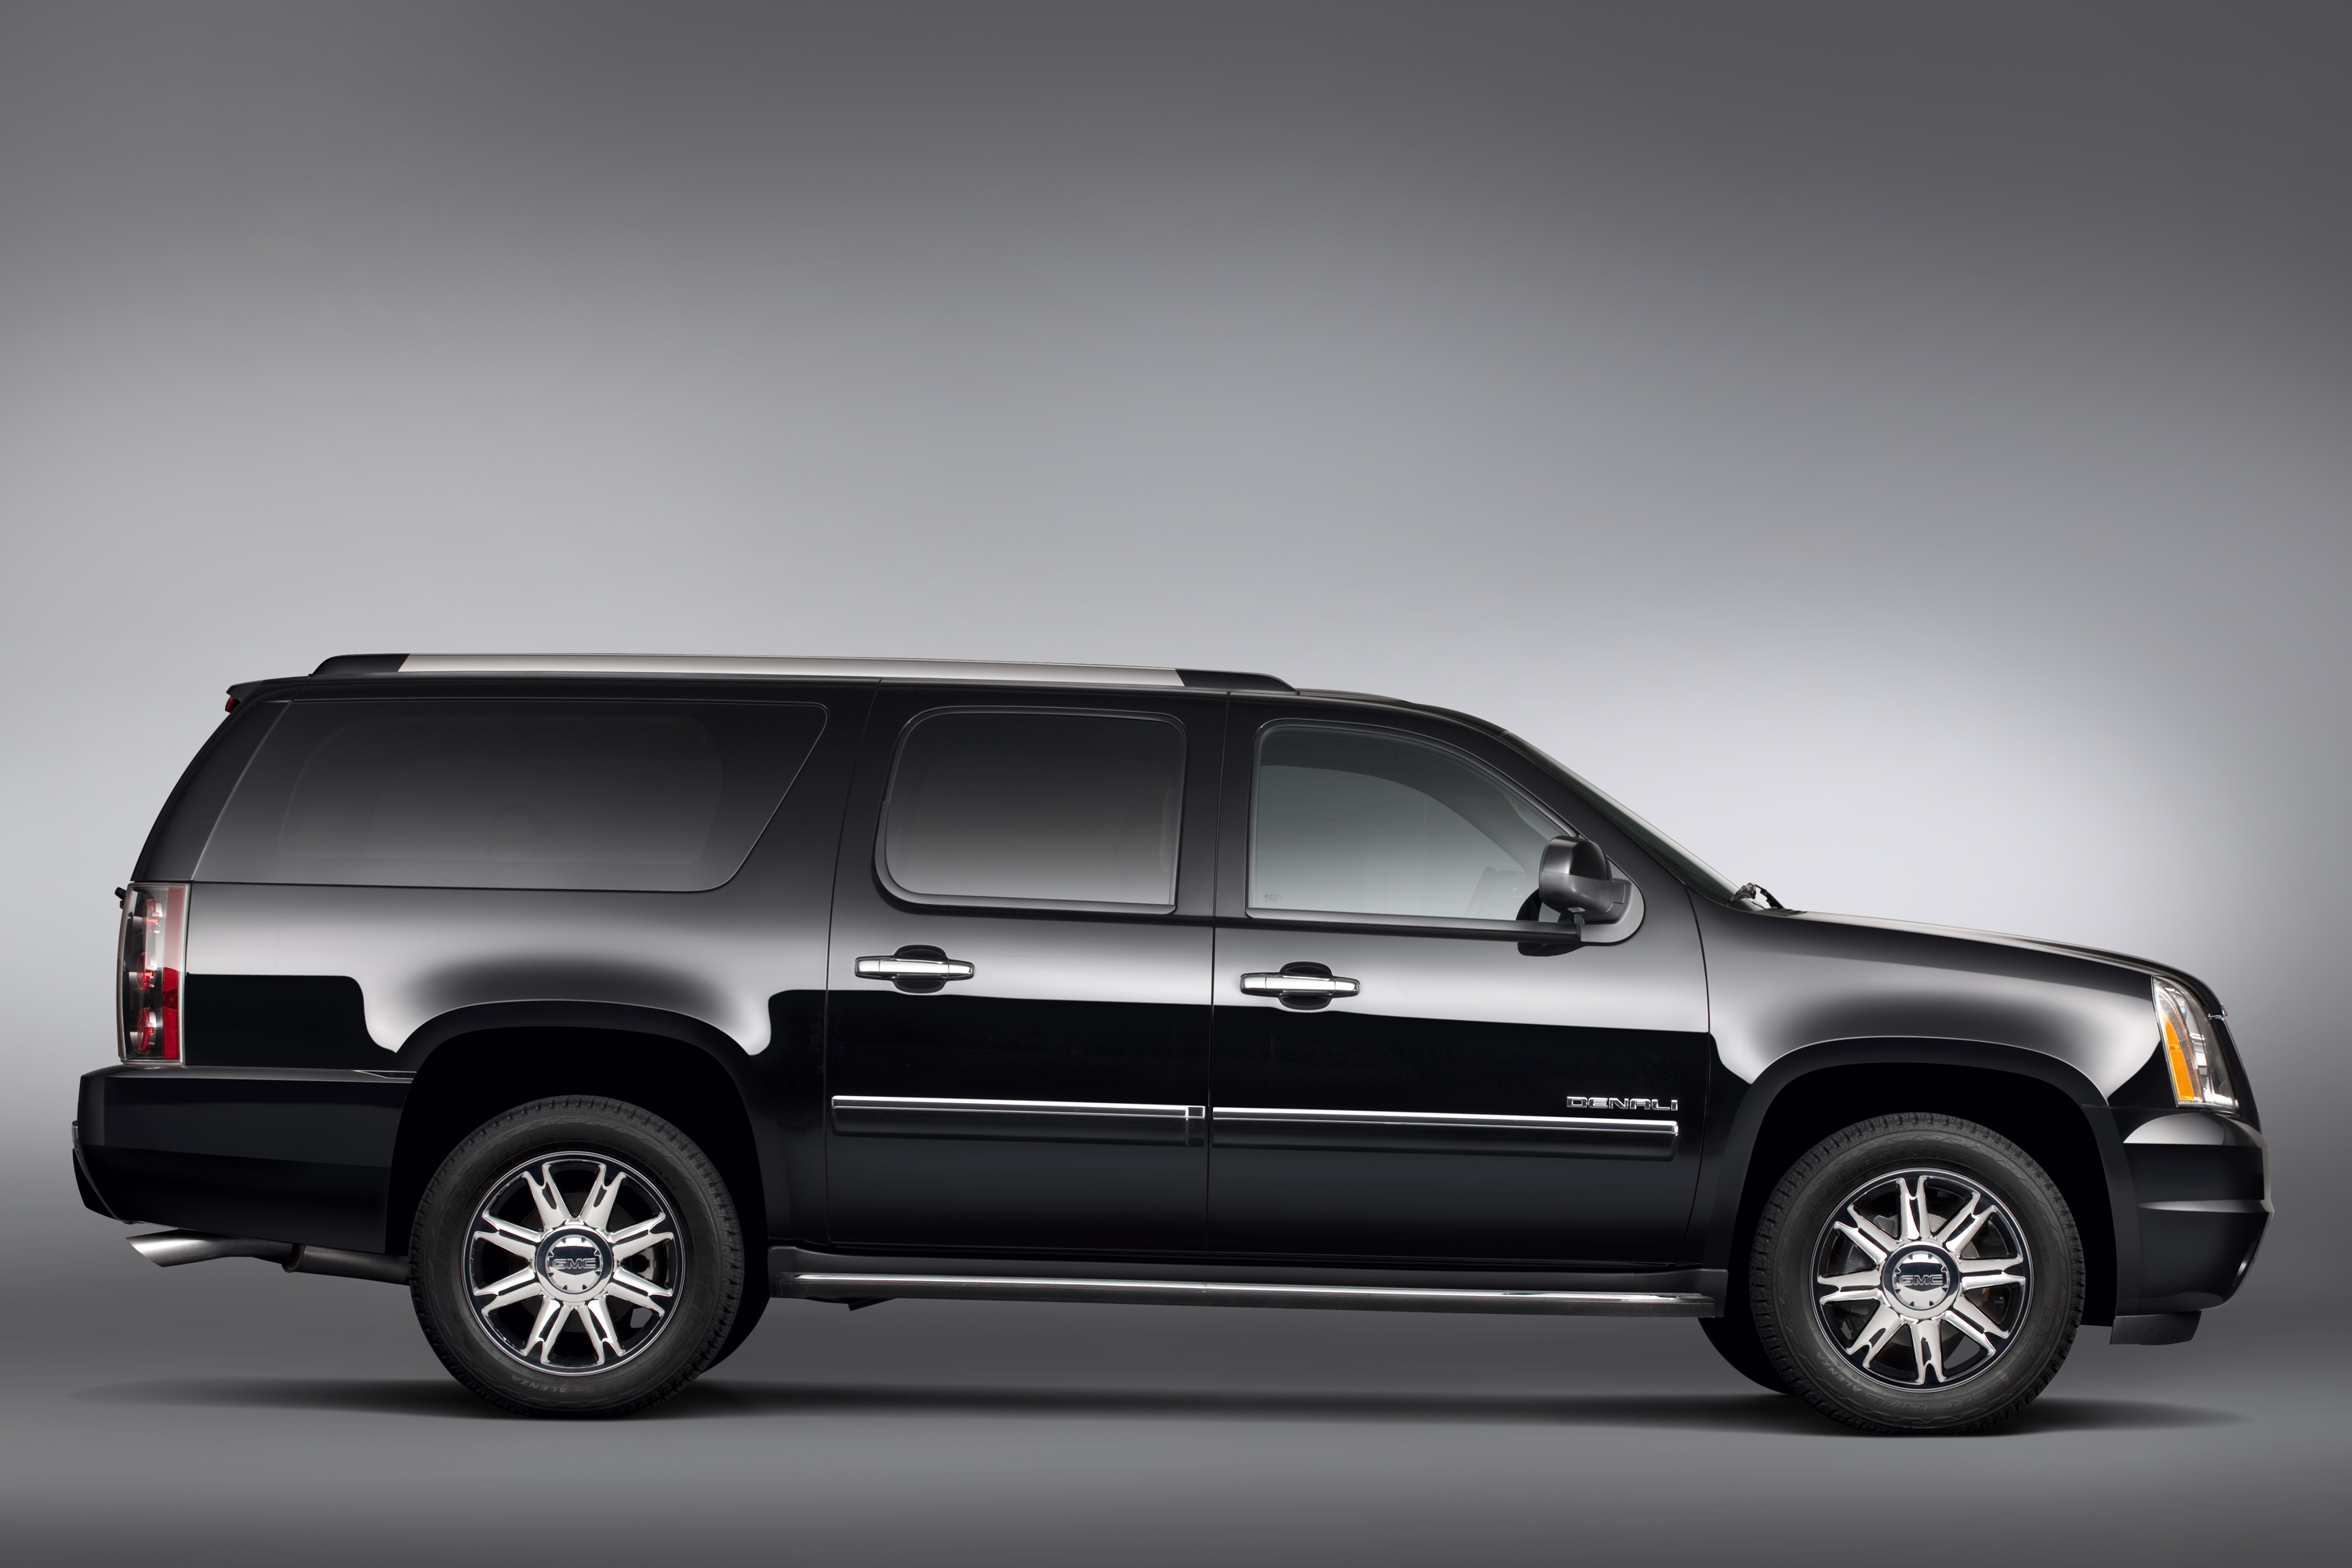 on ride images up roadshow and gmc with yukon interior automatic picked a ideas speed denali xl page refines new ogi